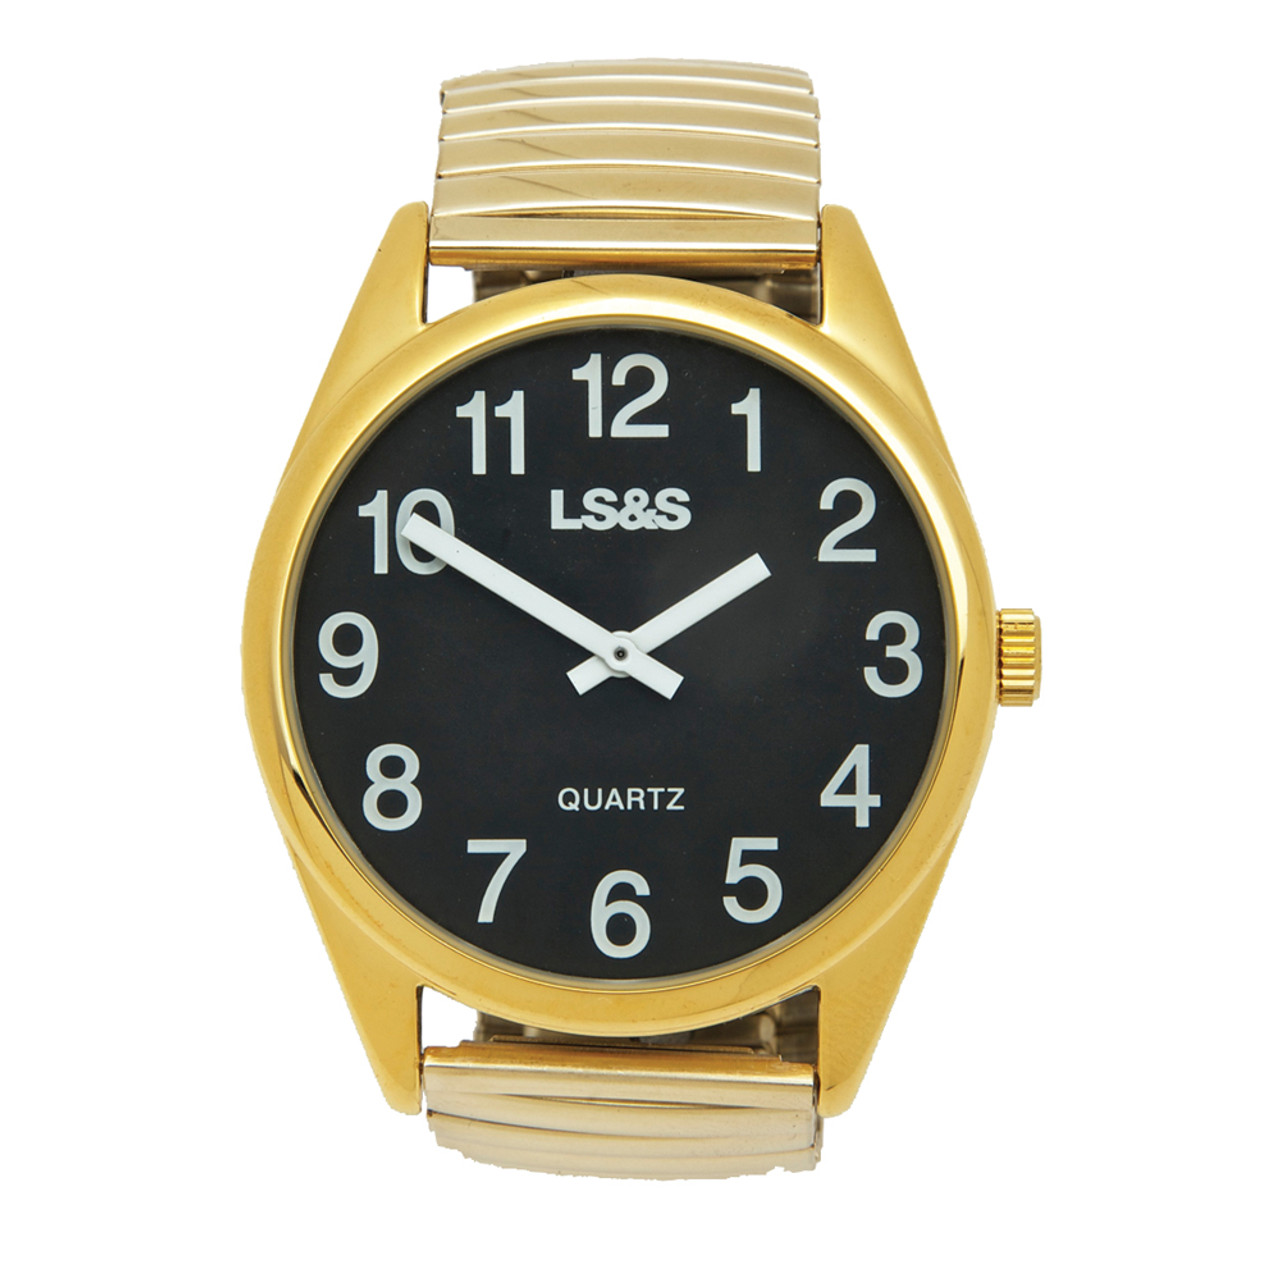 Jumbo Low Vision Watch Black face, gold color, expansion band